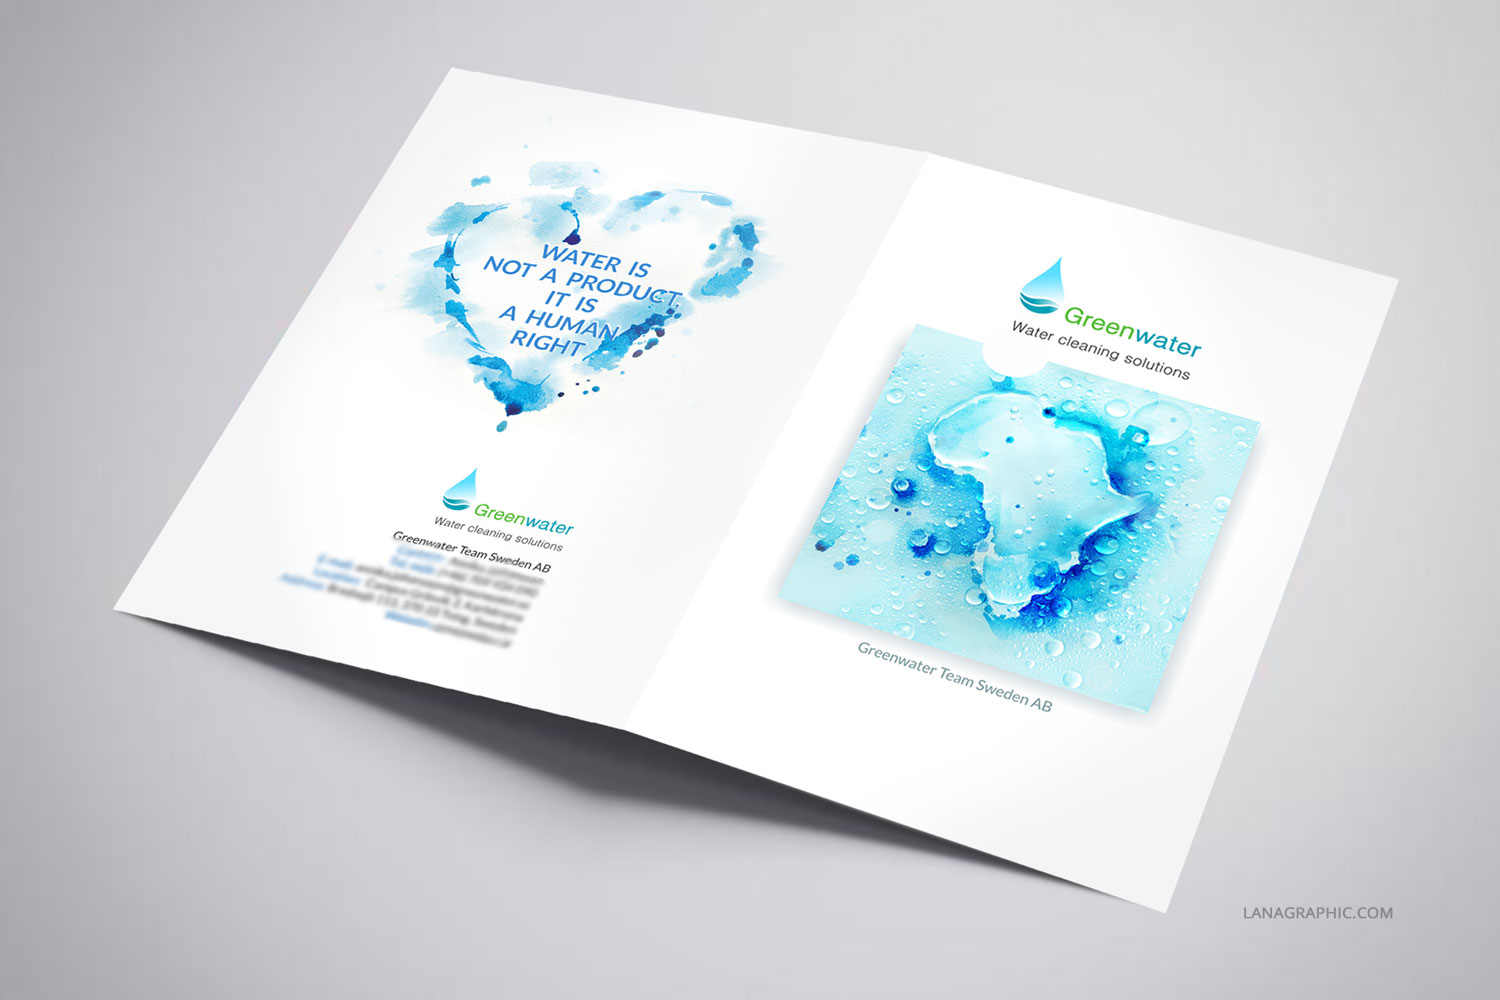 Booklet-Greenwater-Team-in-Africa-by-Lanagraphic